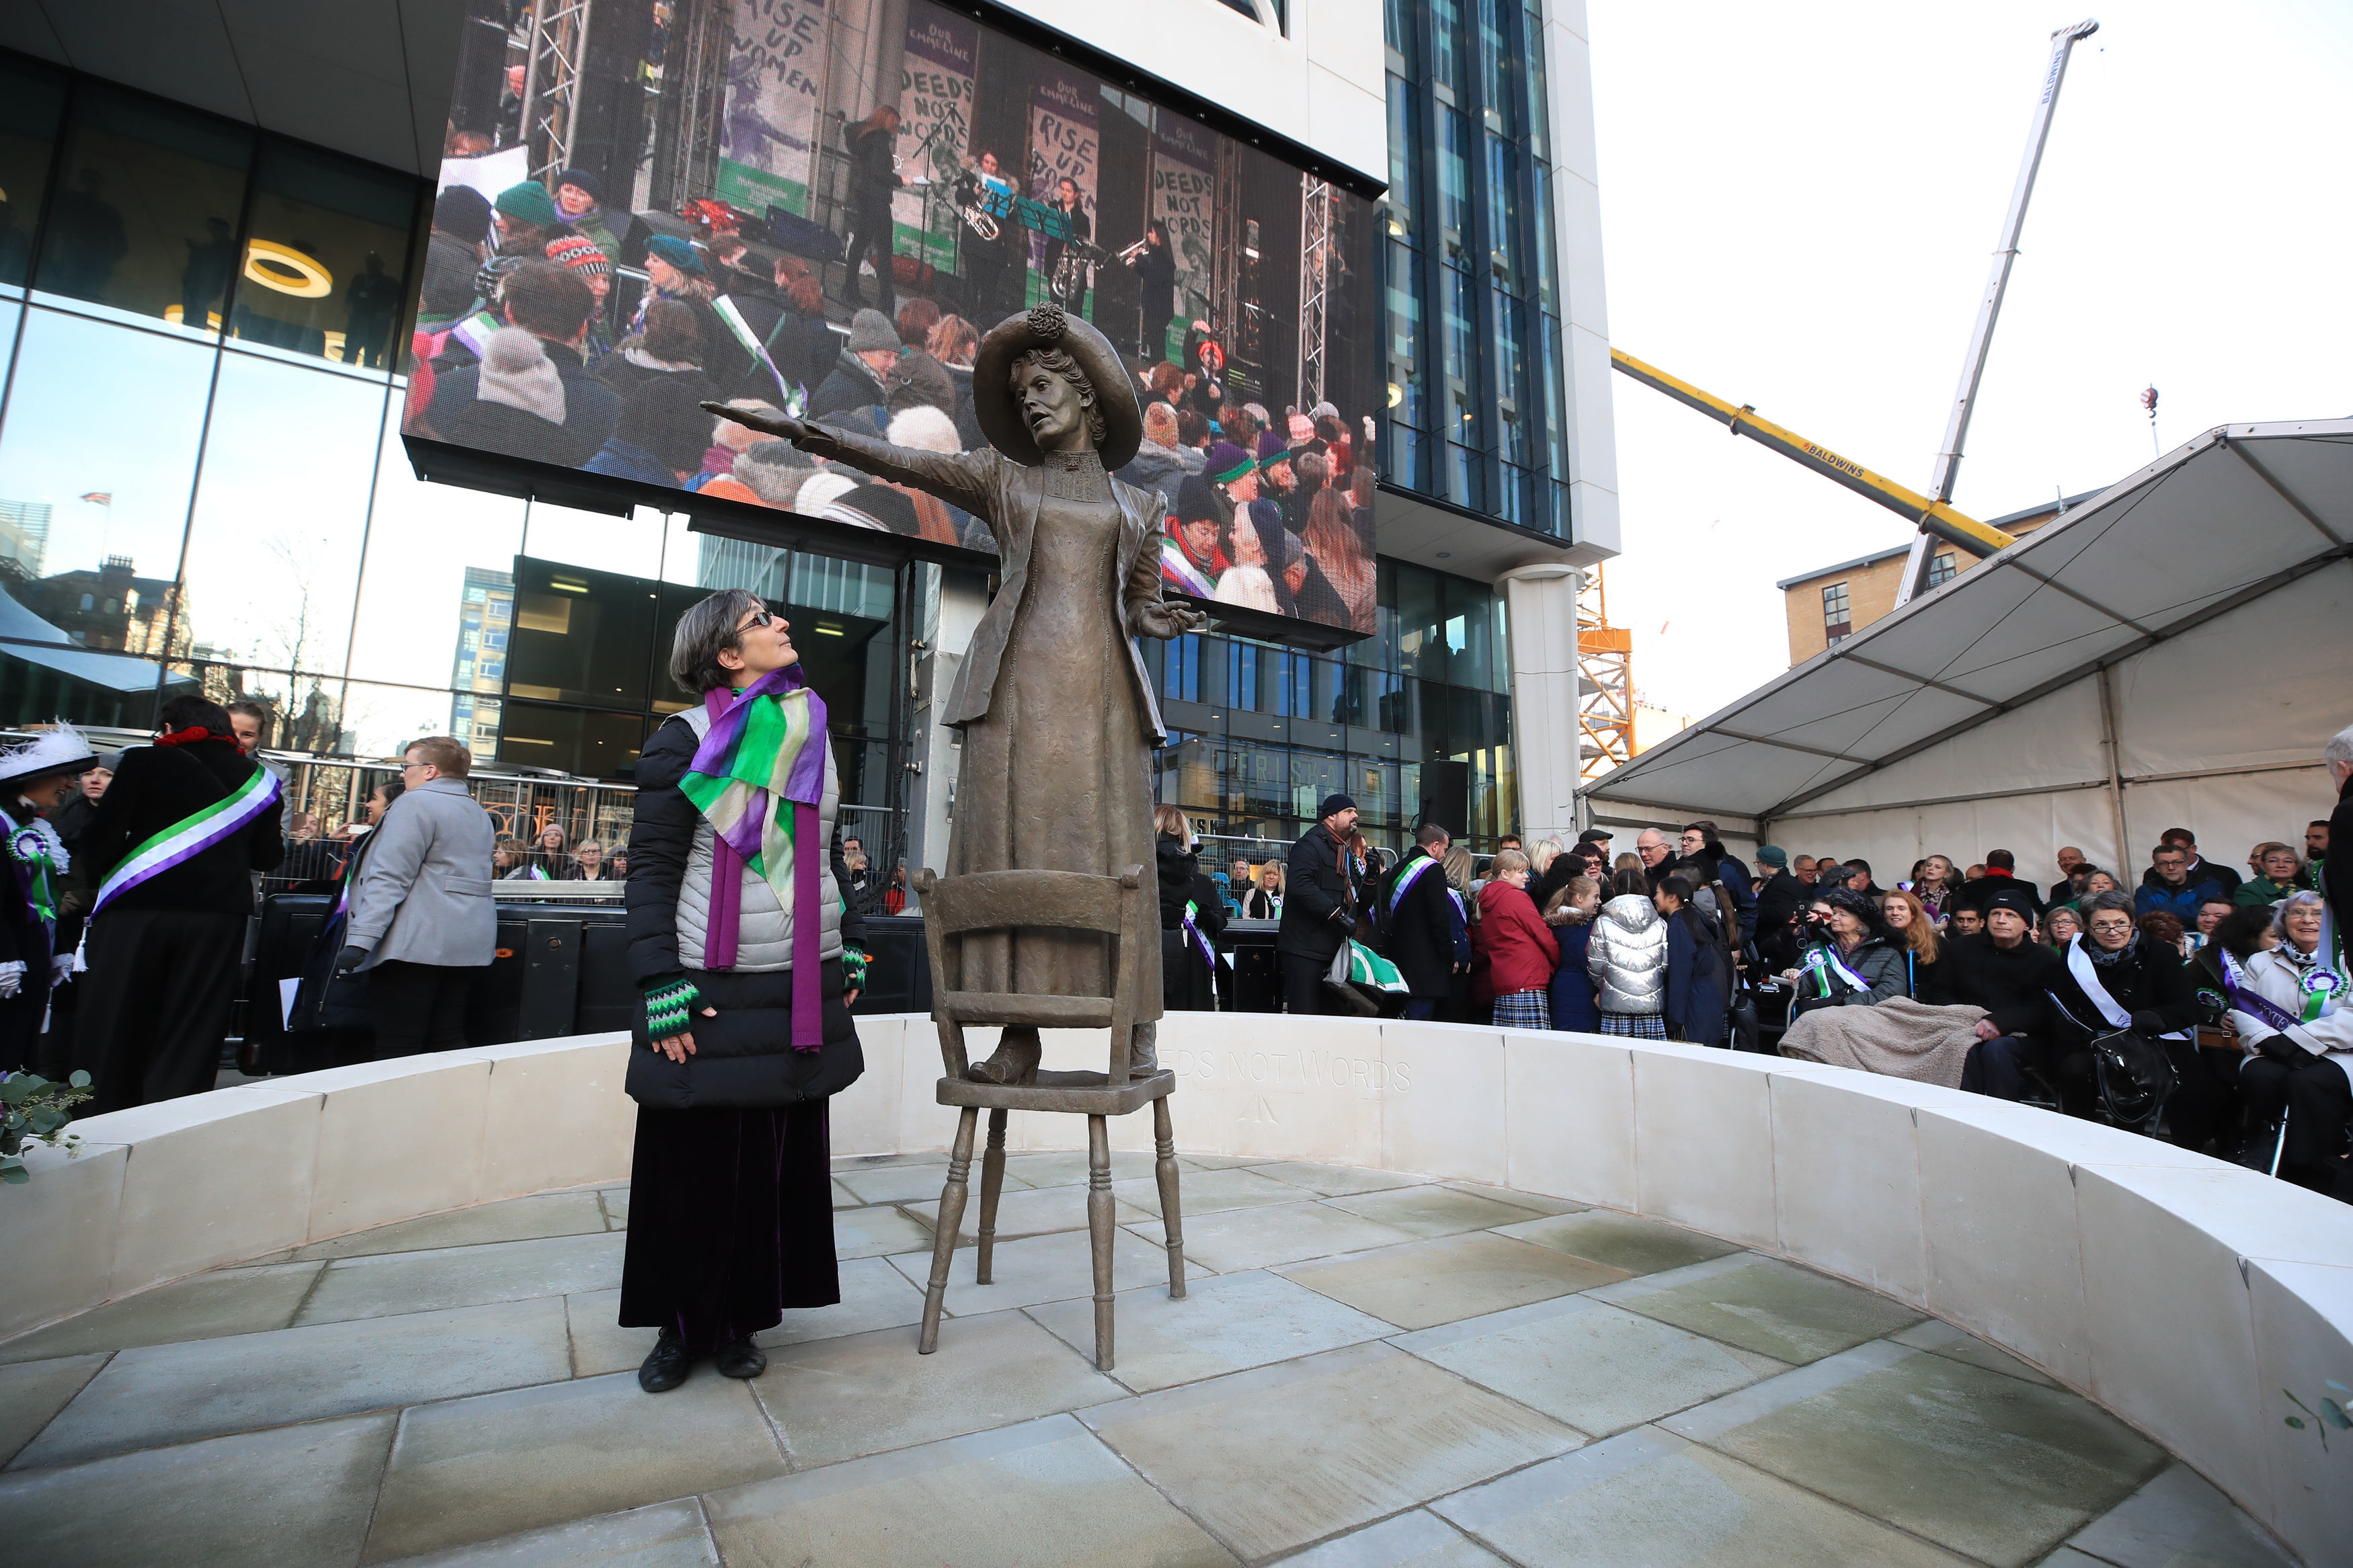 Helen Pankhurst, the great granddaughter of Emmeline Pankhurst, stands next to a statue of Emmeline, by sculptor Hazel Reeves following its unveiling.